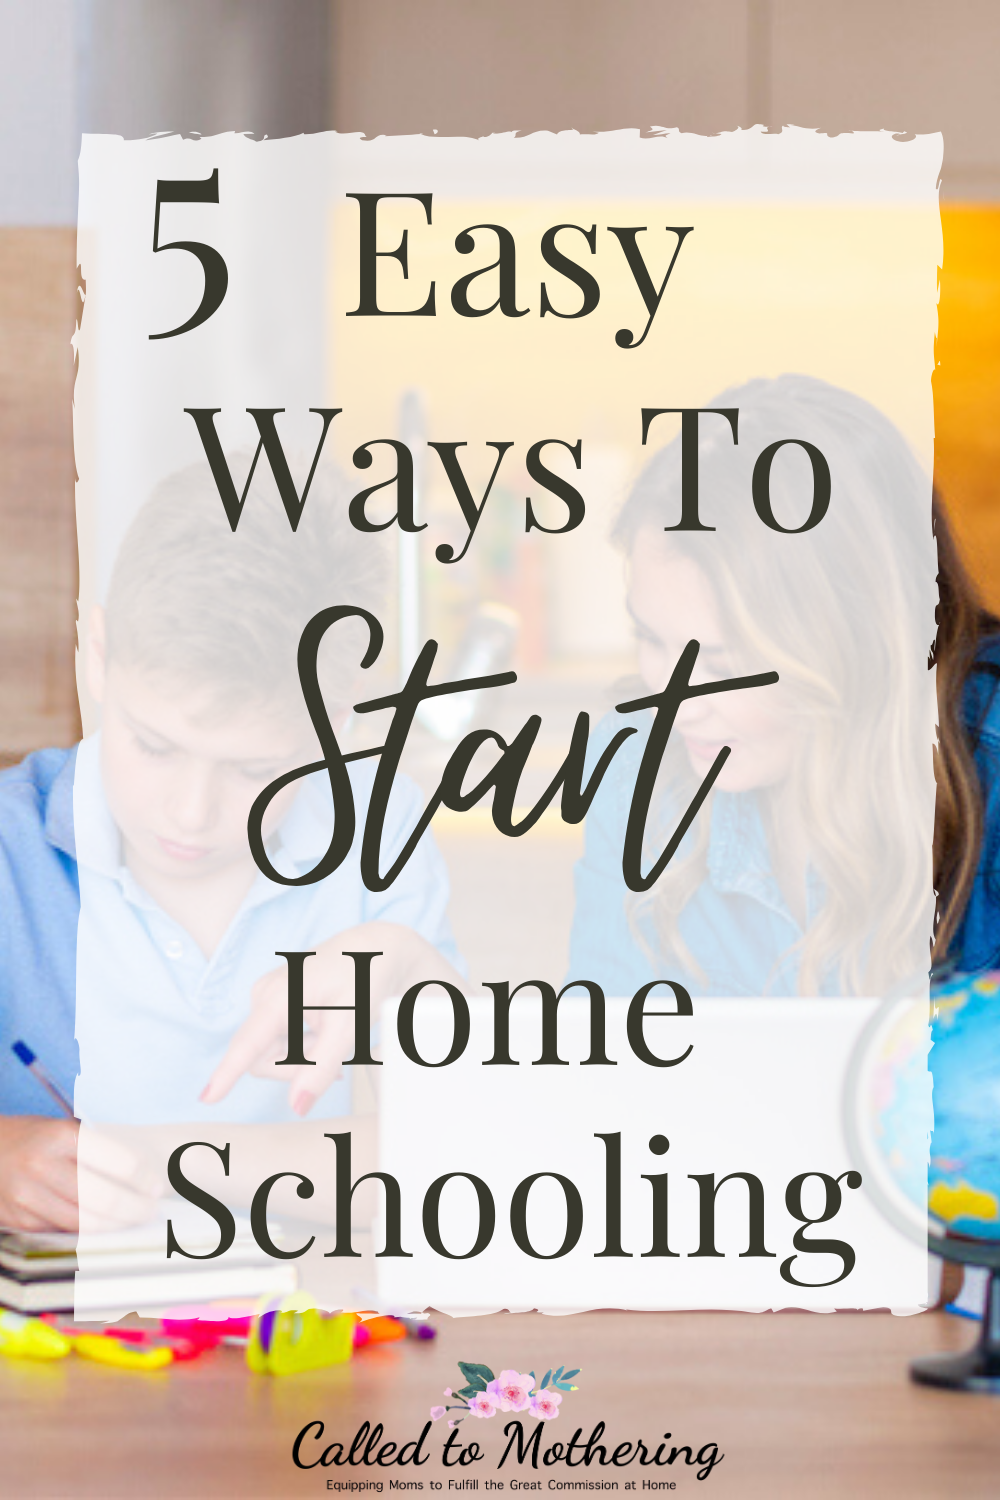 It can be overwhelming knowing exactly where to begin in the homeschool process. Here are 5 helpful tips on how to get started! #homeschooling #homeschooltips